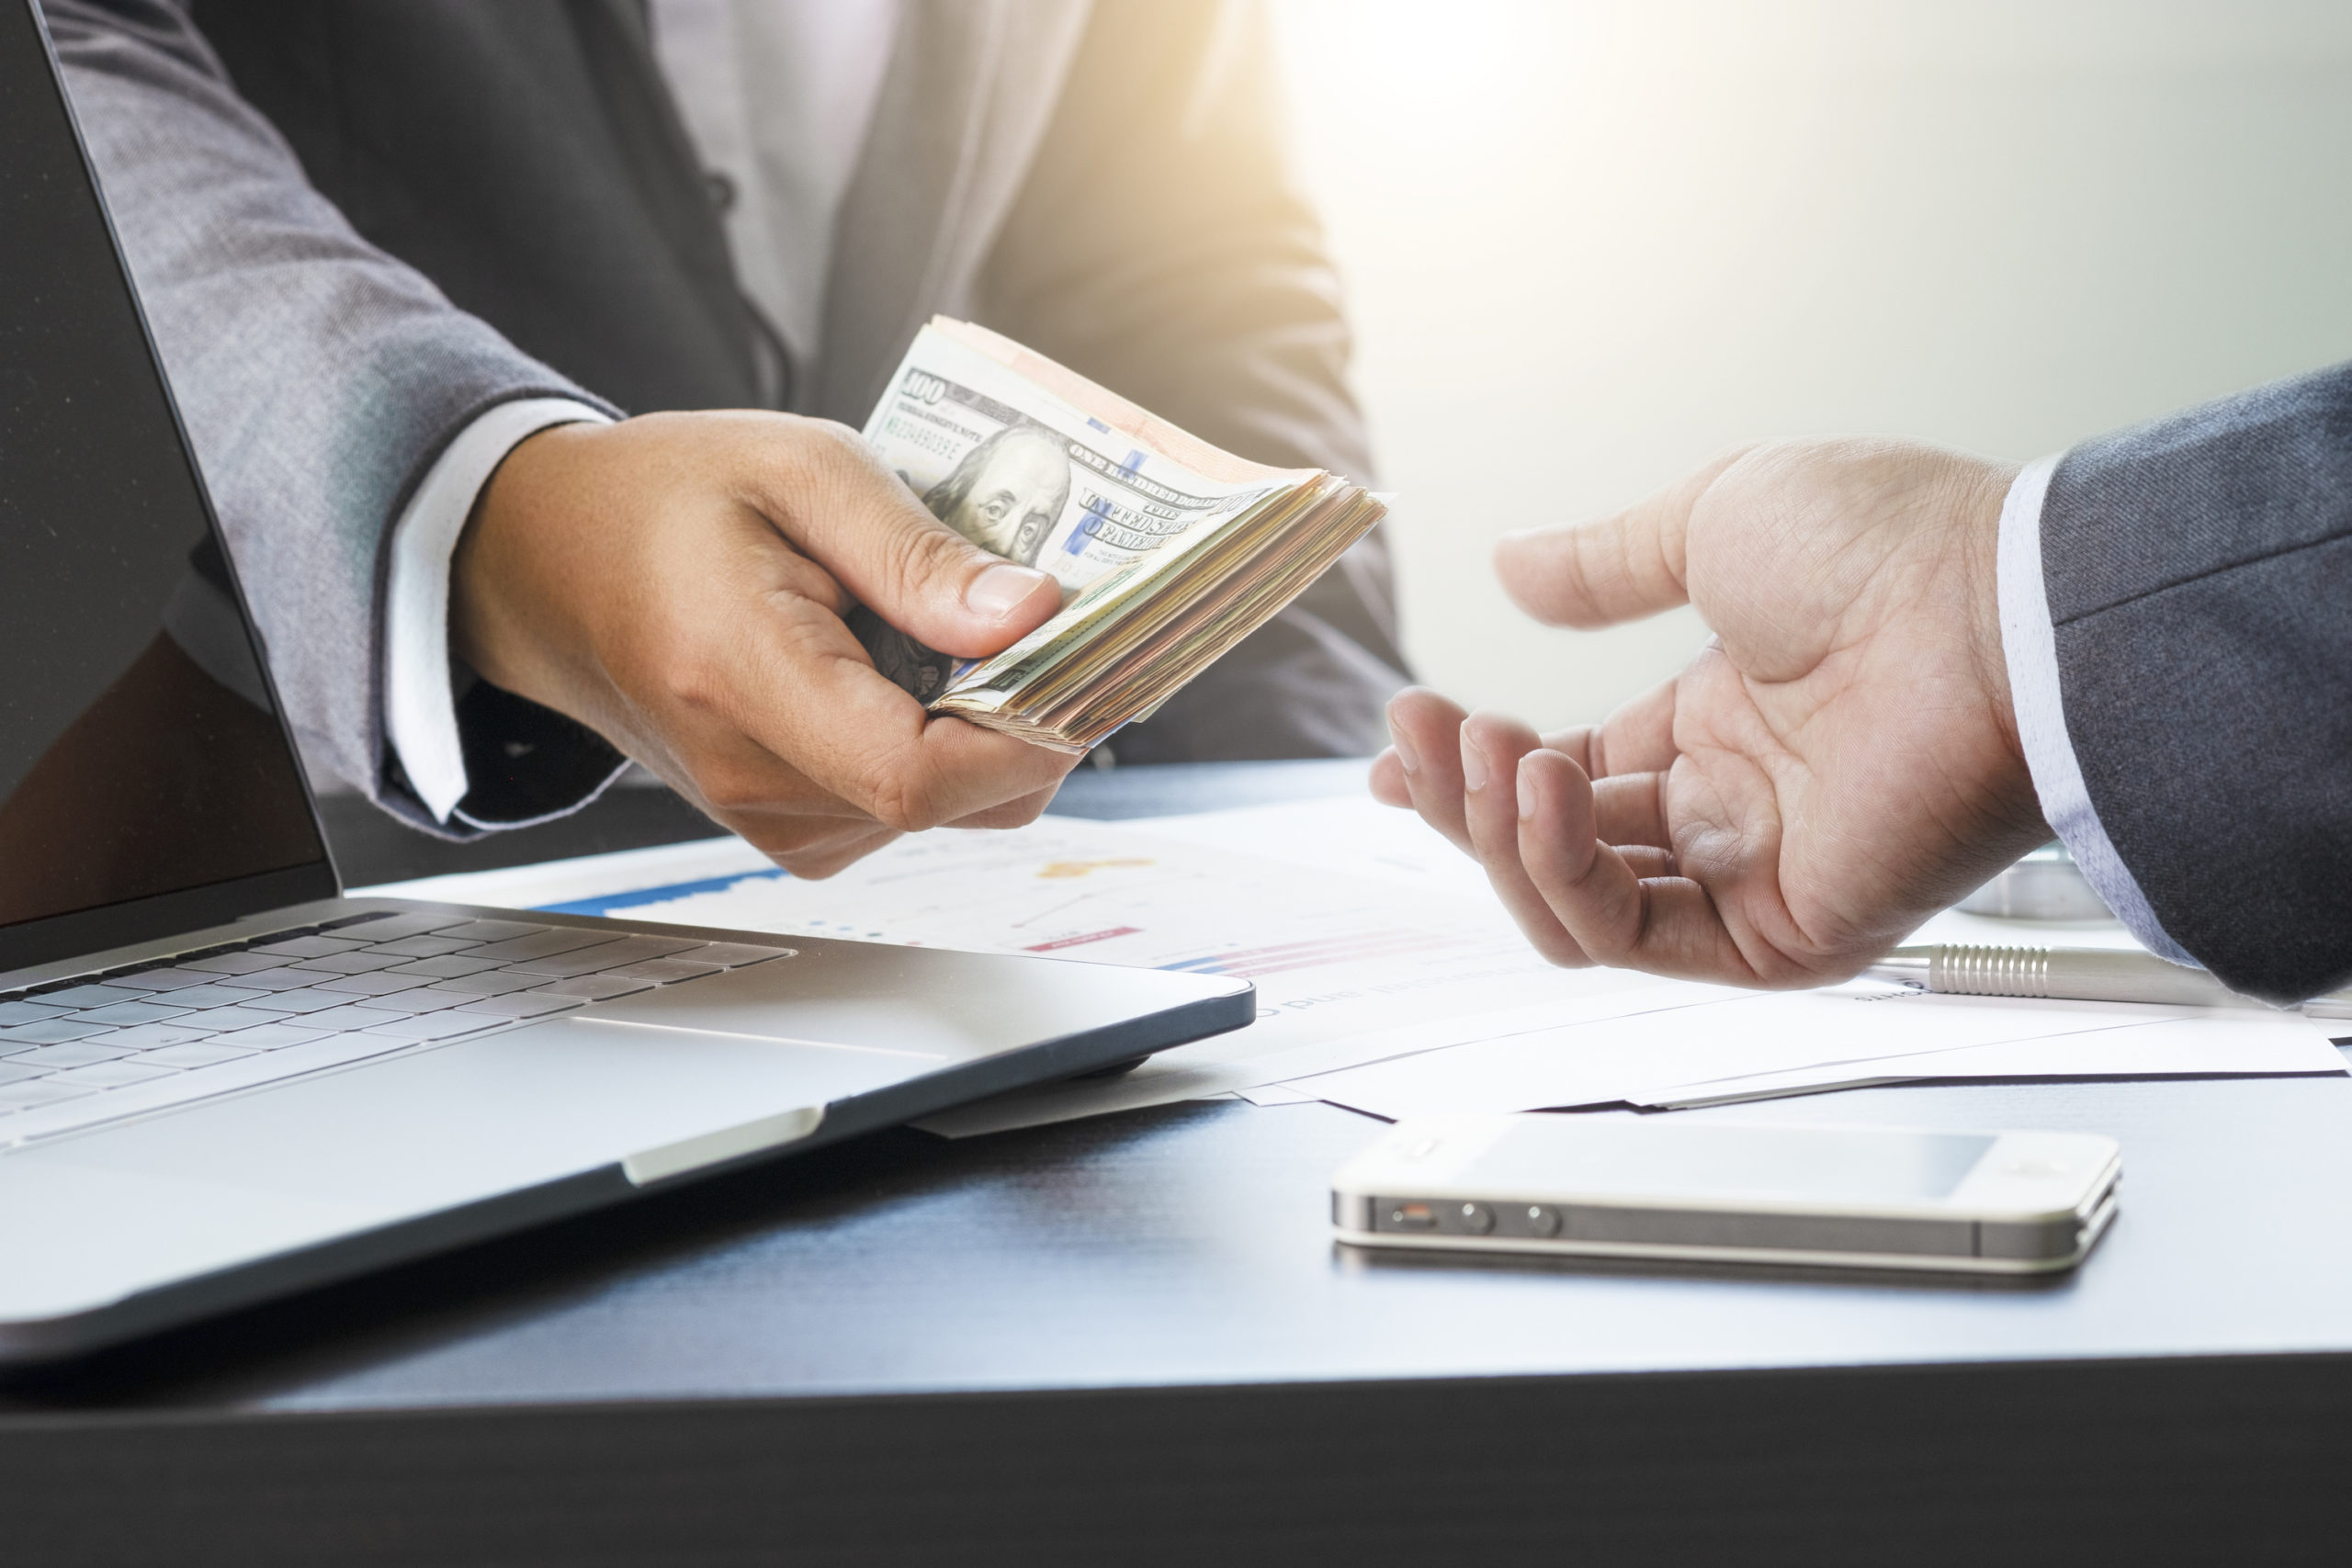 Collections attorney concept. Two businessmen give and take US dollar banknote .US dollar is main and popular currency of exchange in the world.Investment and payment concept.